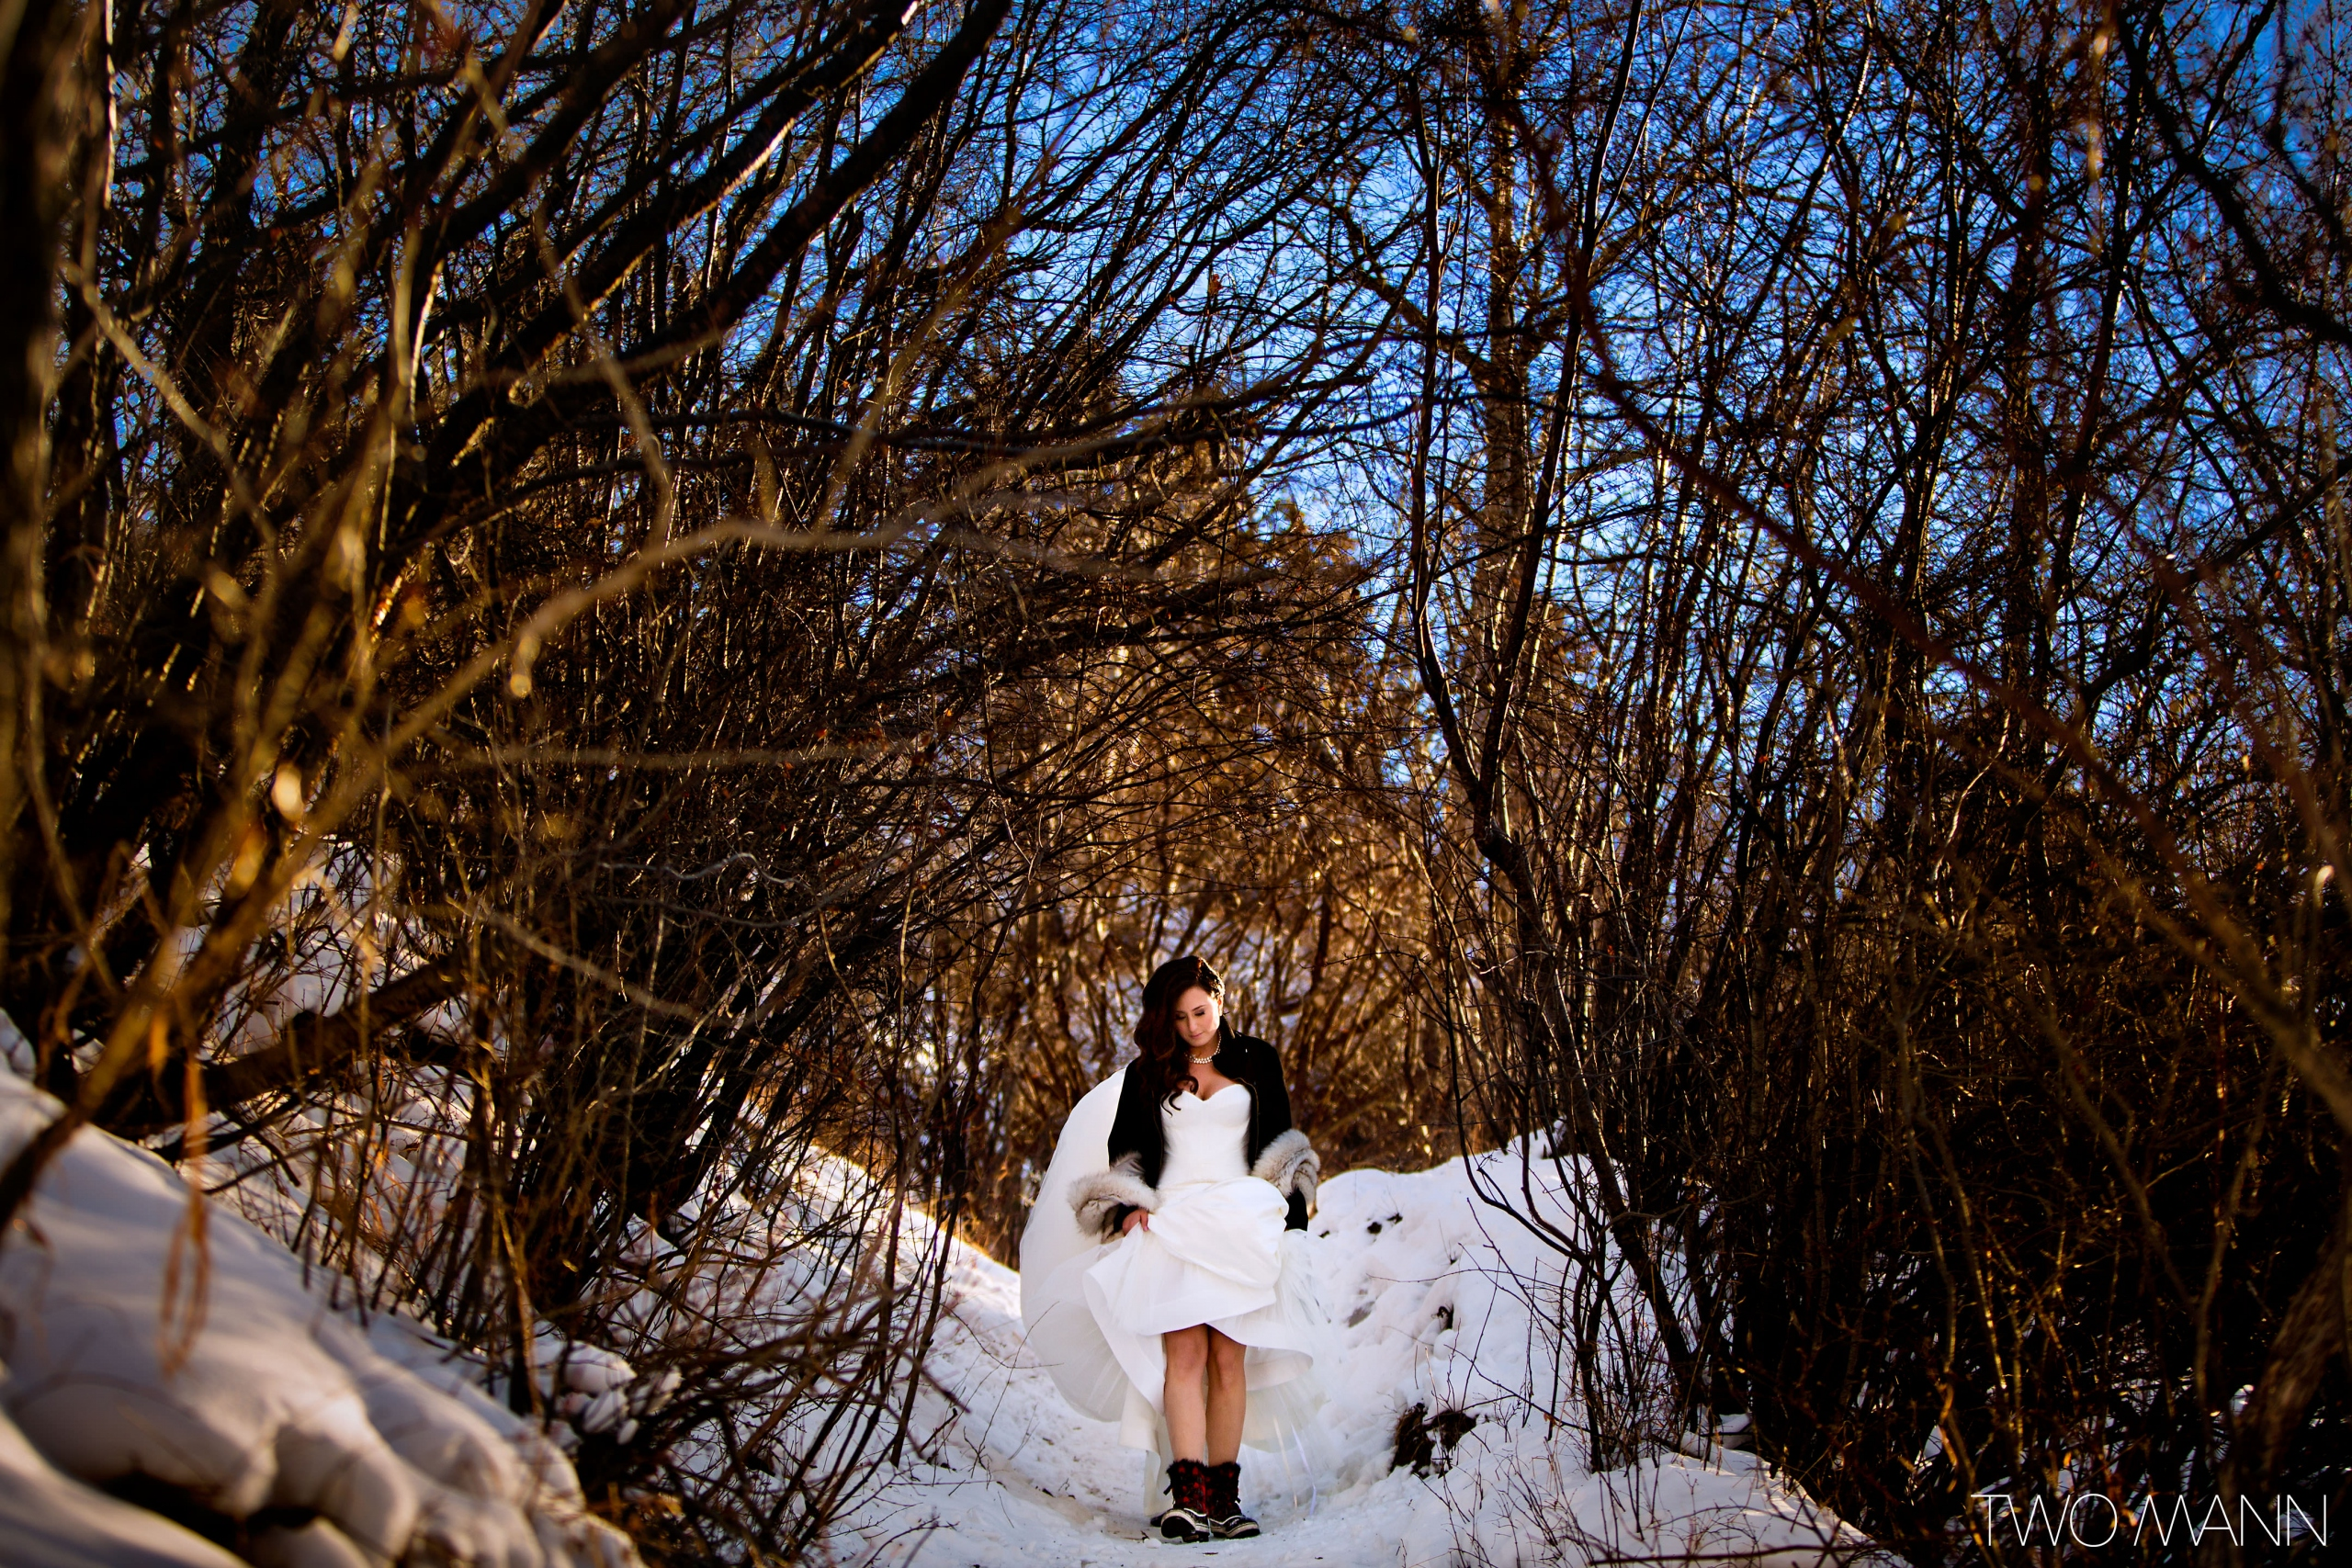 a bride with boots walking in snow-covered forest